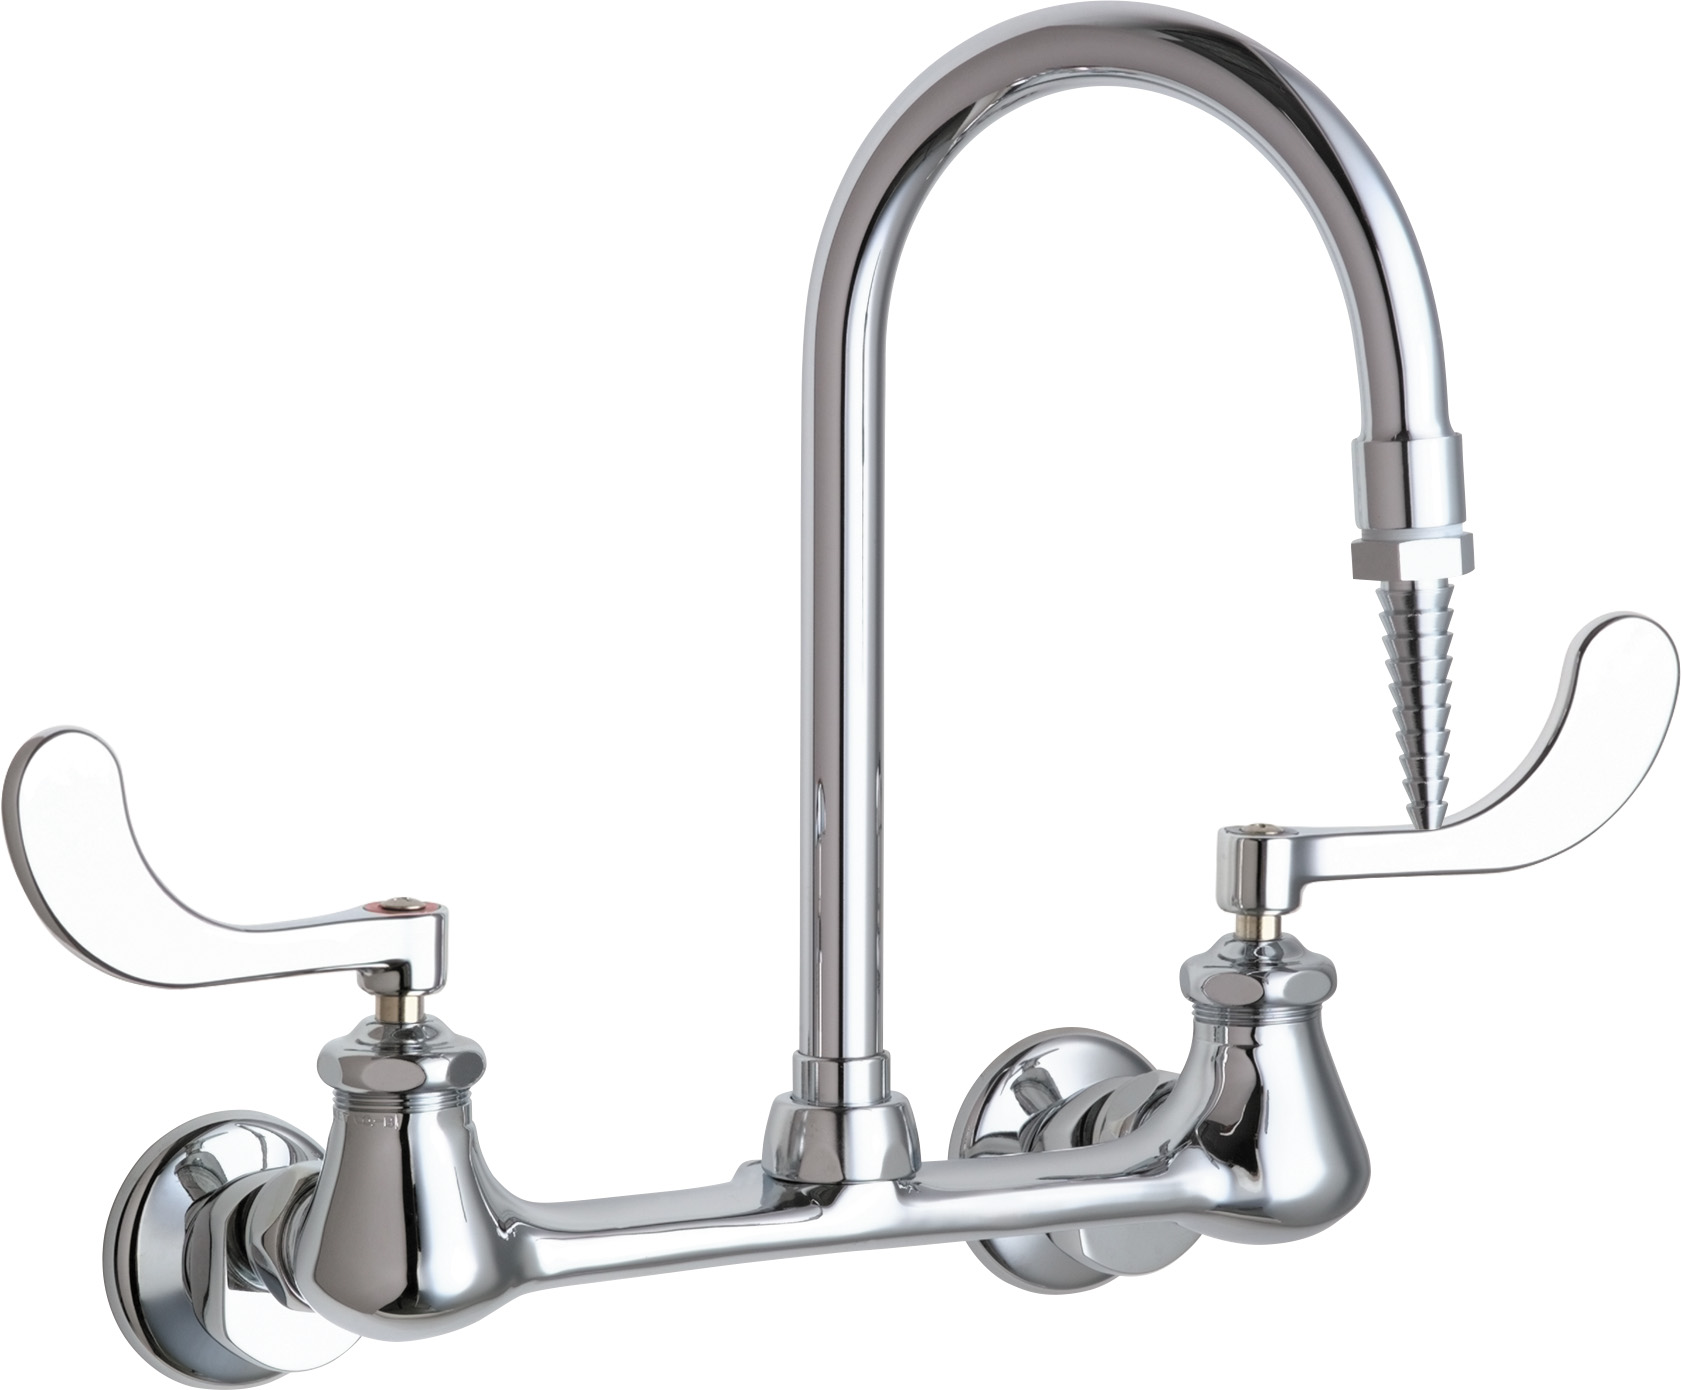 Wall-mounted manual laboratory faucet with 8